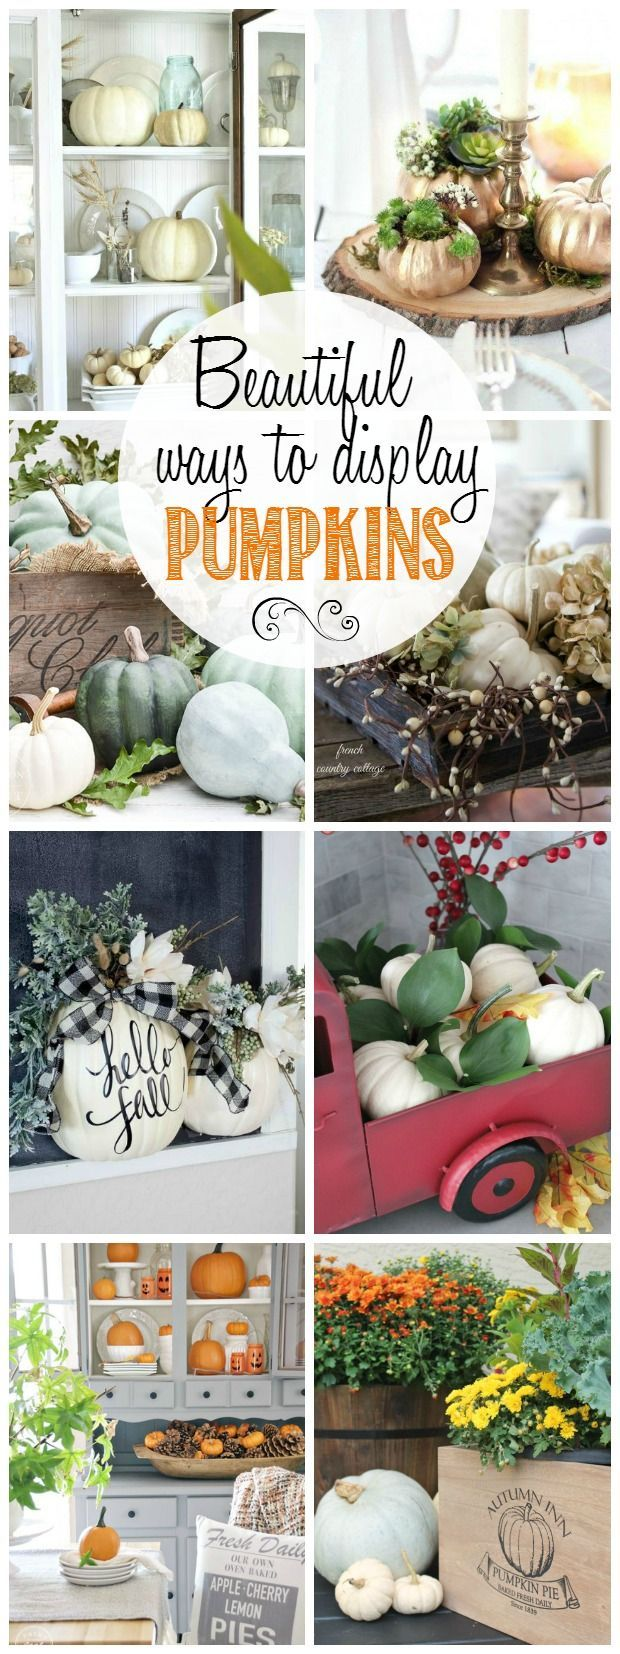 Decorating With Pumpkins - Clean and Scentsible